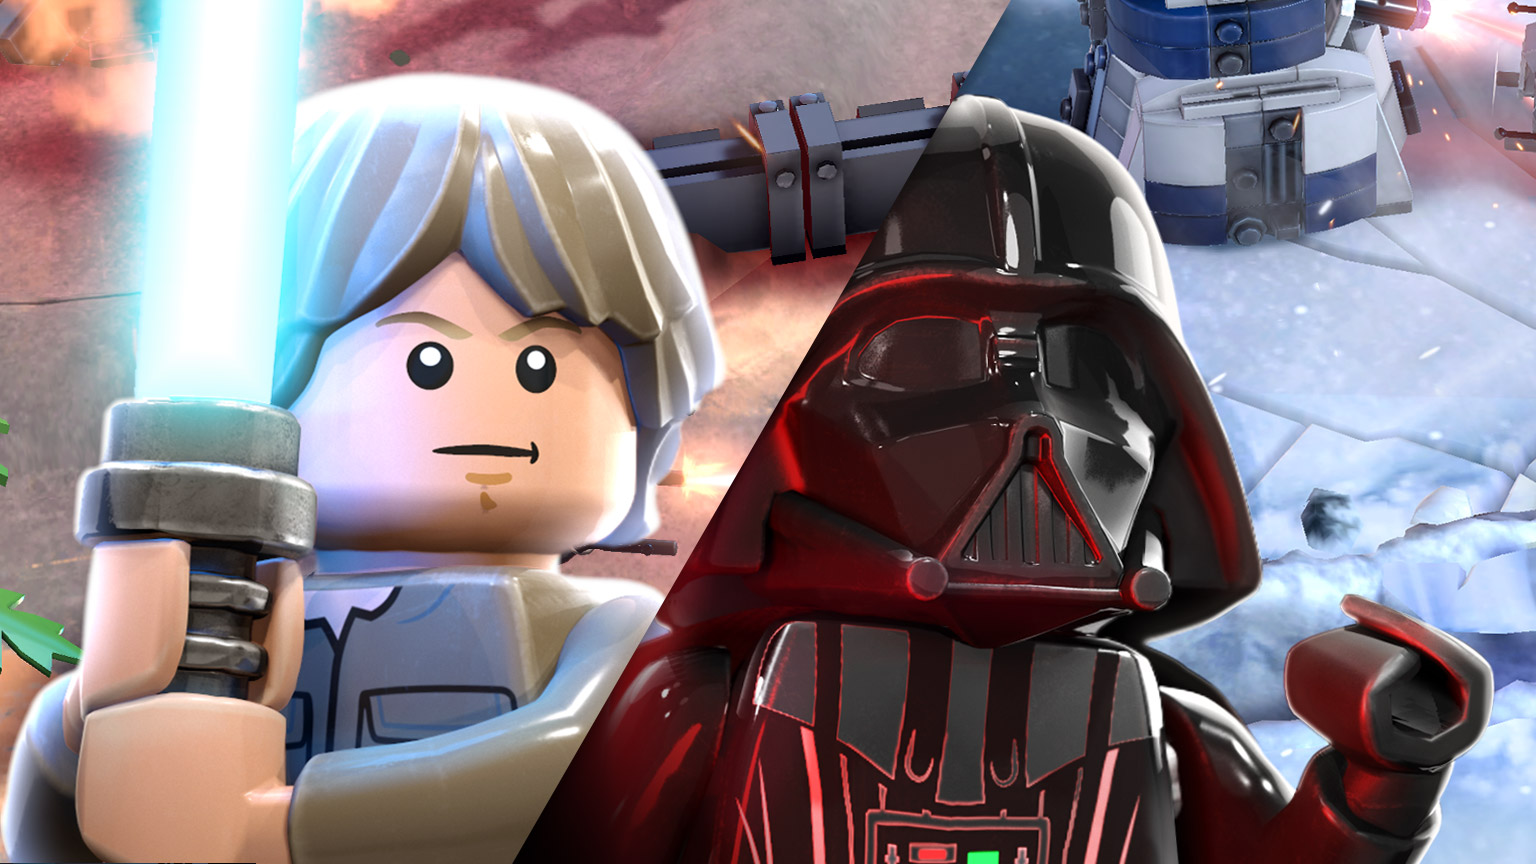 LEGO Star Wars Battles FTP strategy game coming to Android in 2020